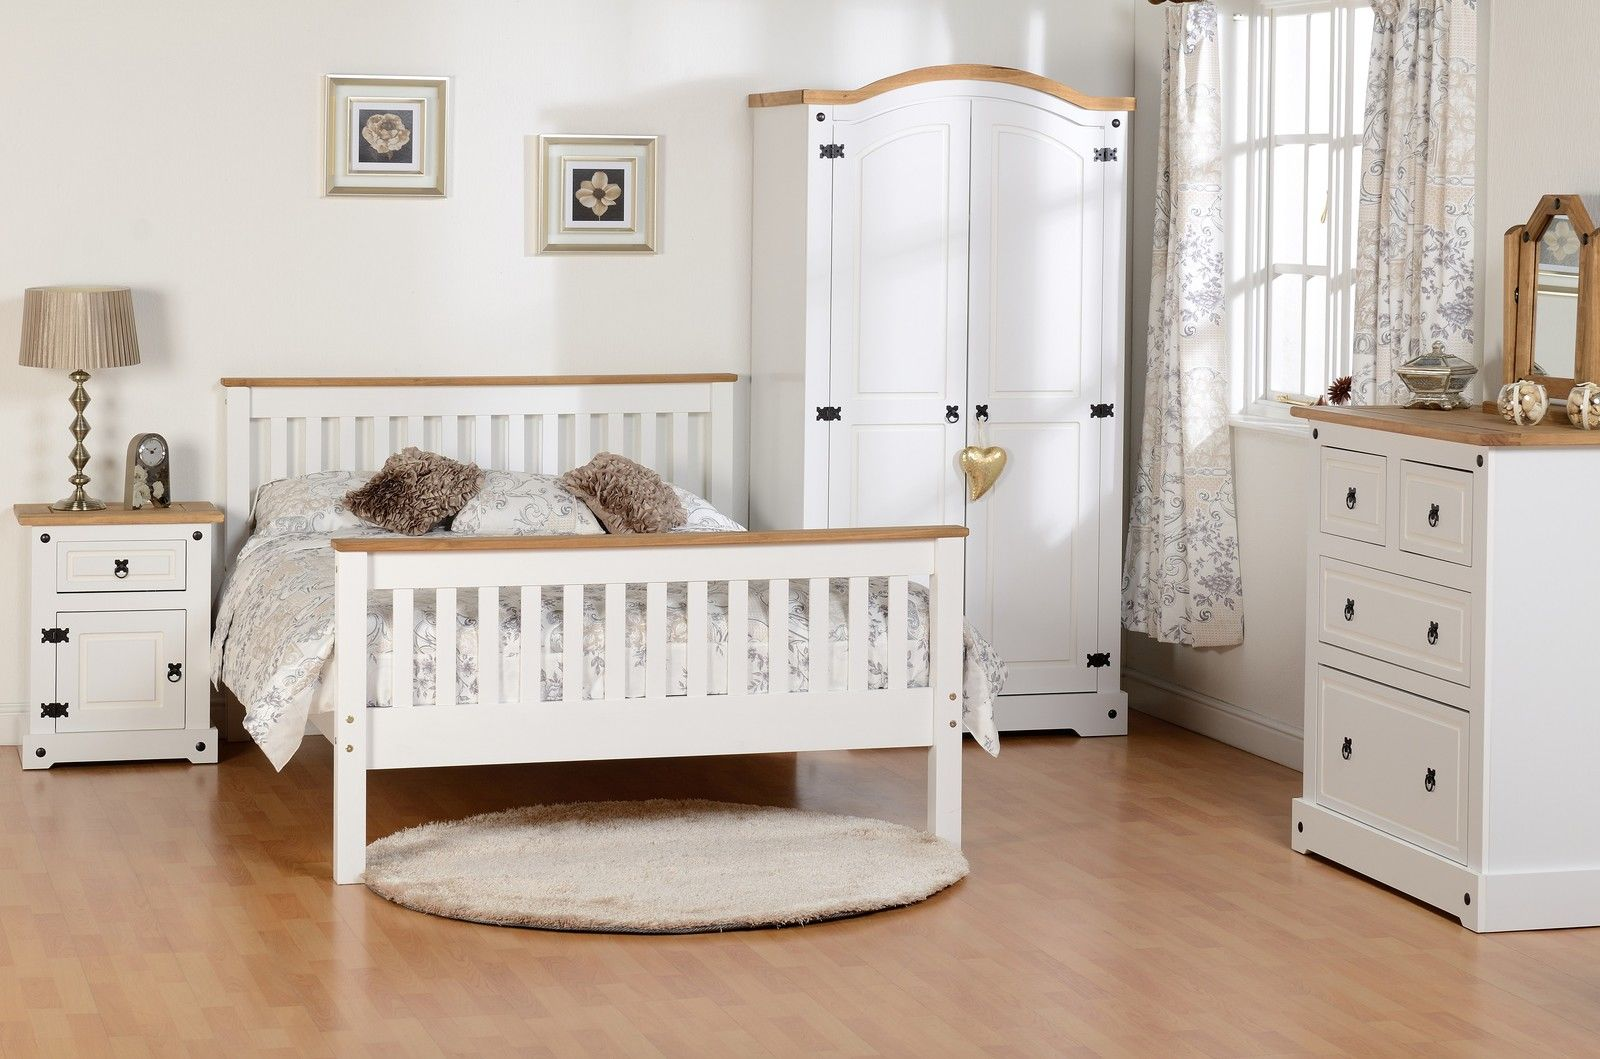 Details About Seconique White Corona Farm House Bedroom Furniture Waxed Pine